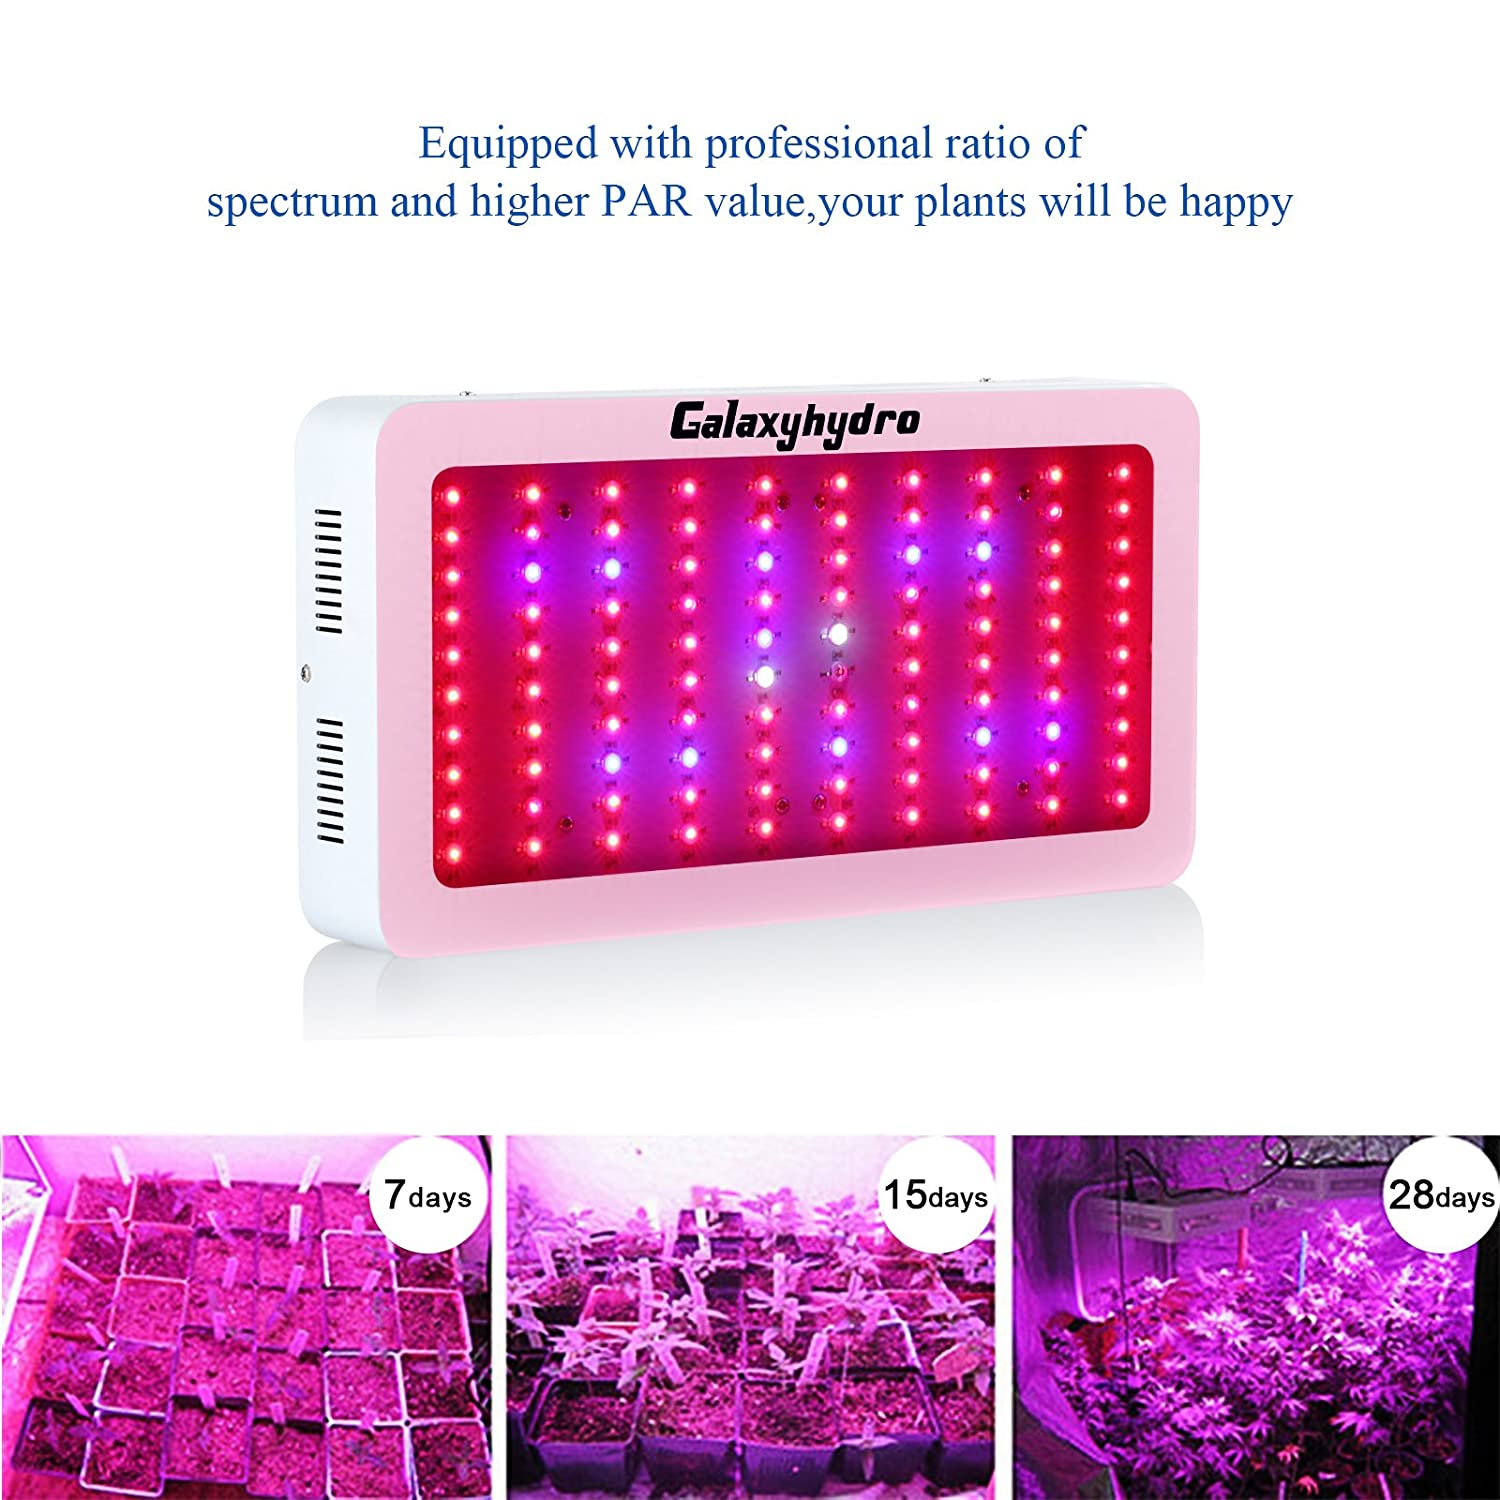 Amazon roleadro 300w led grow light galaxyhydro series full amazon roleadro 300w led grow light galaxyhydro series full spectrum grow lamp for plants veg and flower added daisy chain function and larger size parisarafo Gallery